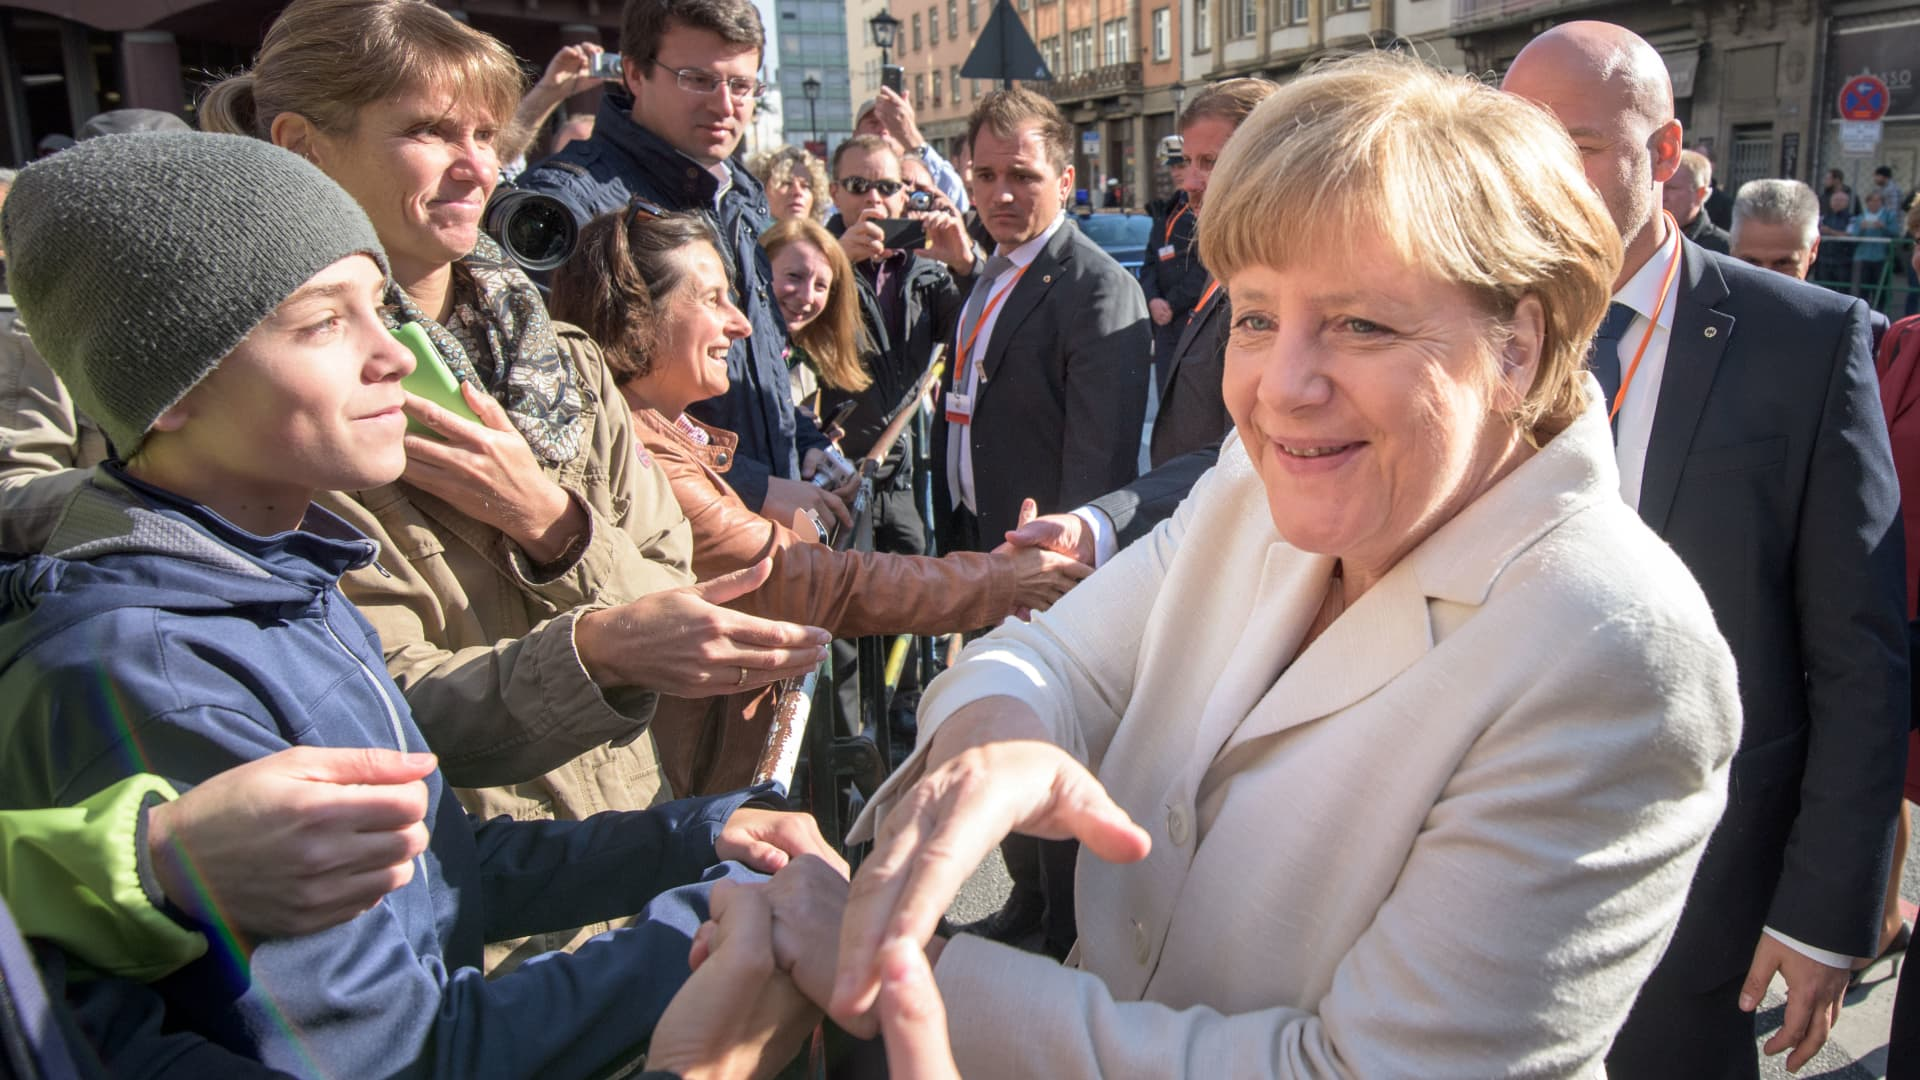 Outgoing German Chancellor Angela Merkel greets the crowds in Frankfurt, Germany.